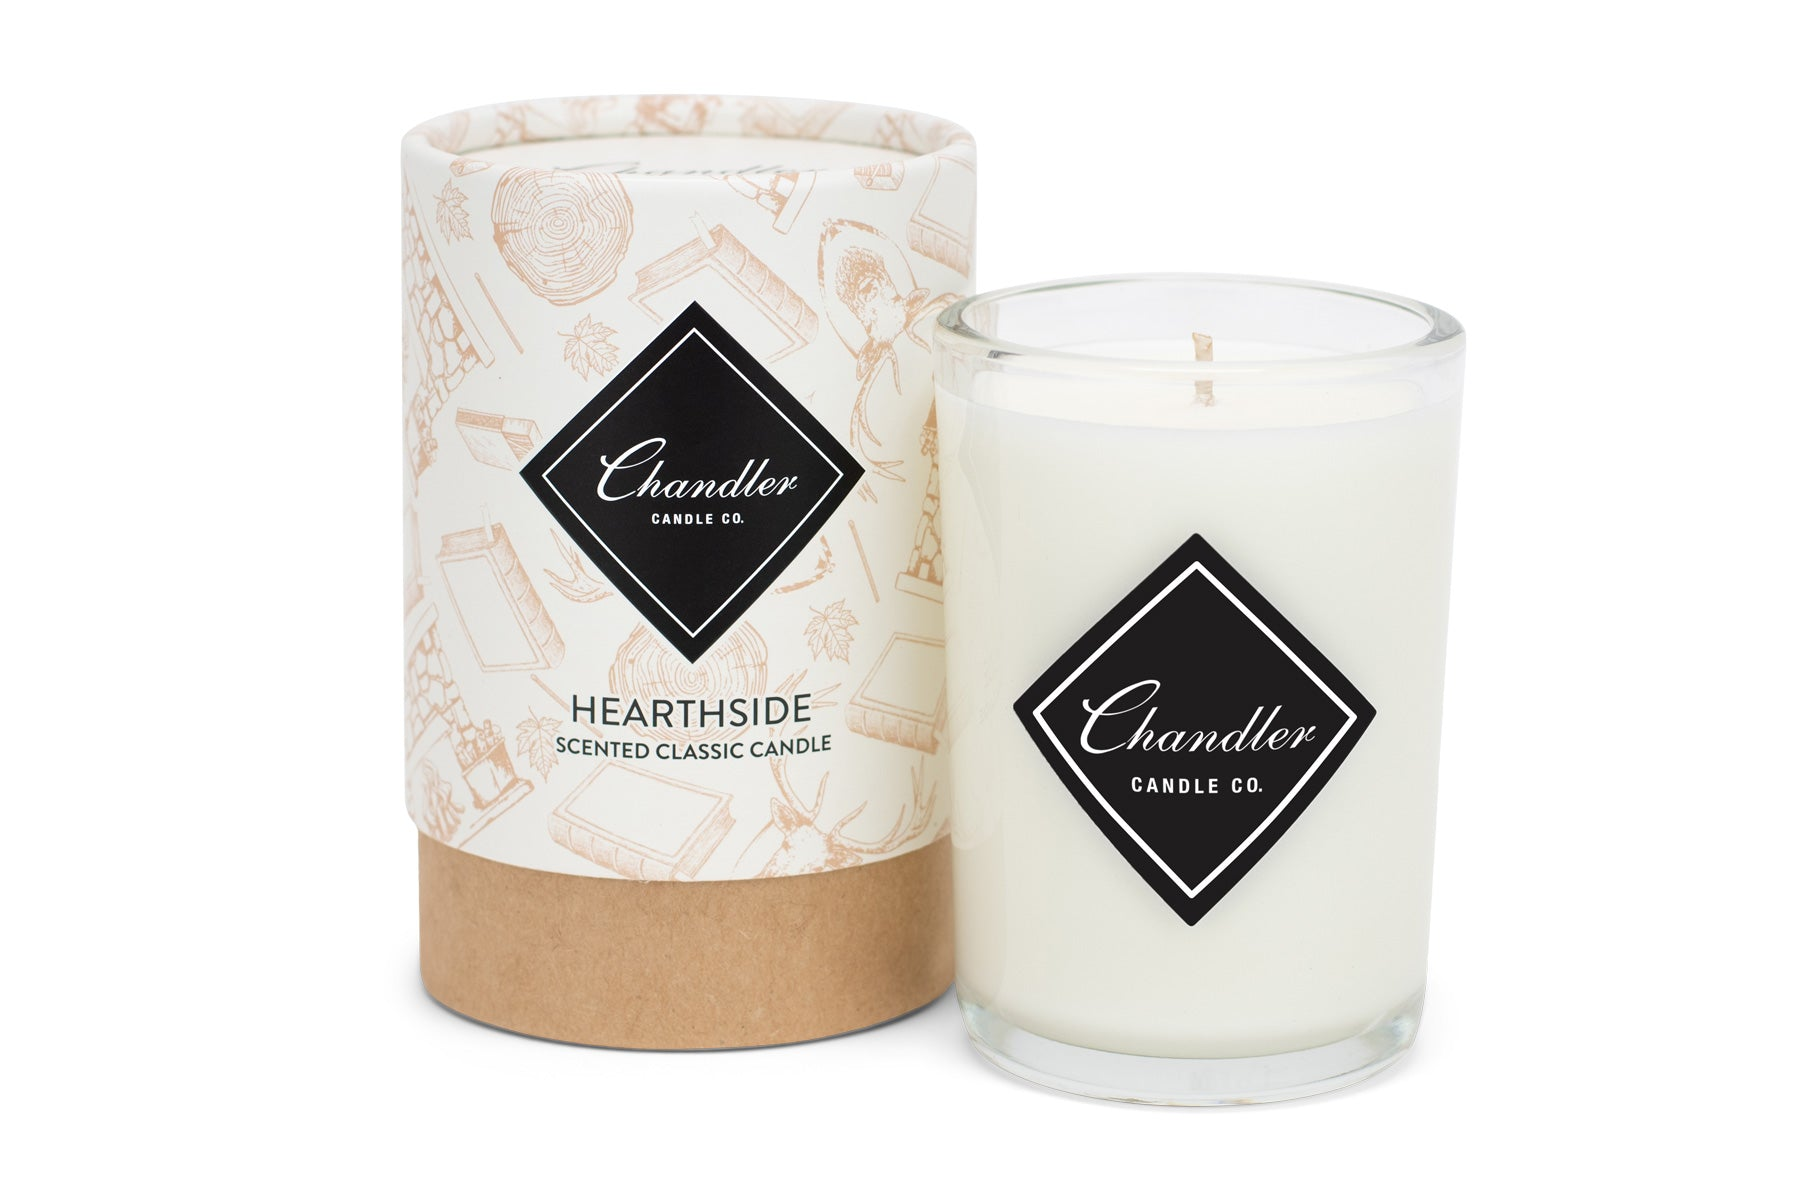 Hearthside Fireplace Scented Candle